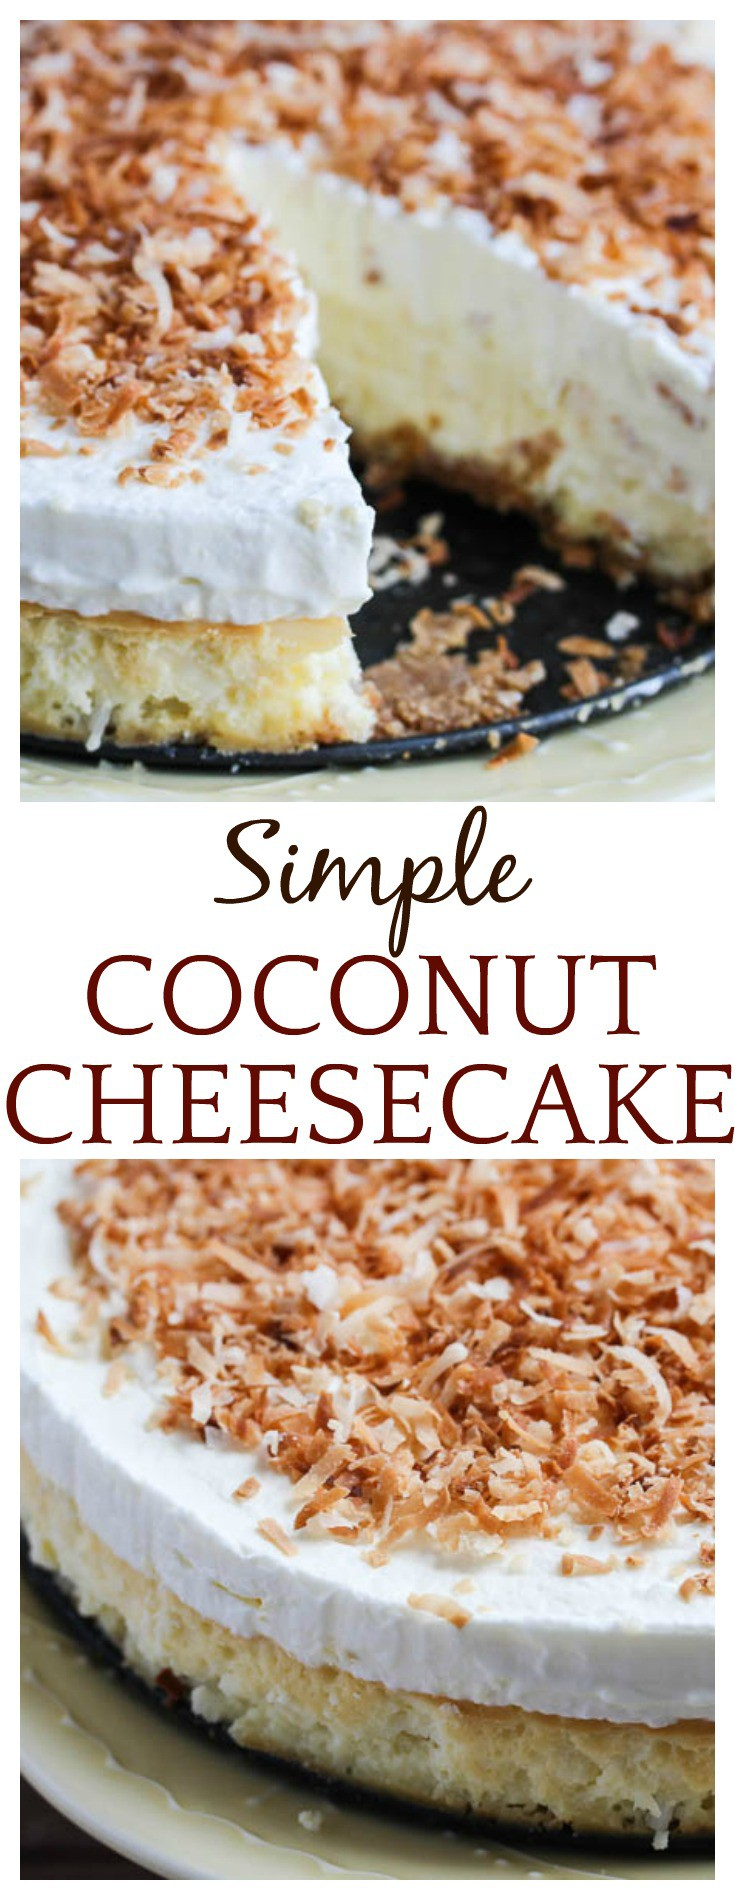 Do you love homemade cheesecake, but hate the hassle of making them? Try this Simple Coconut Cheesecake using The Cheesecake Factory at Home mix! So easy, so delicious! It's a delicious dessert recipe that's perfect for every occasion from holidays to just because! #ad #MyCheesecake #CheesecakeFactoryatHome #cheesecake #coconut #coconutcheesecake #baking #dessert #easyrecipe